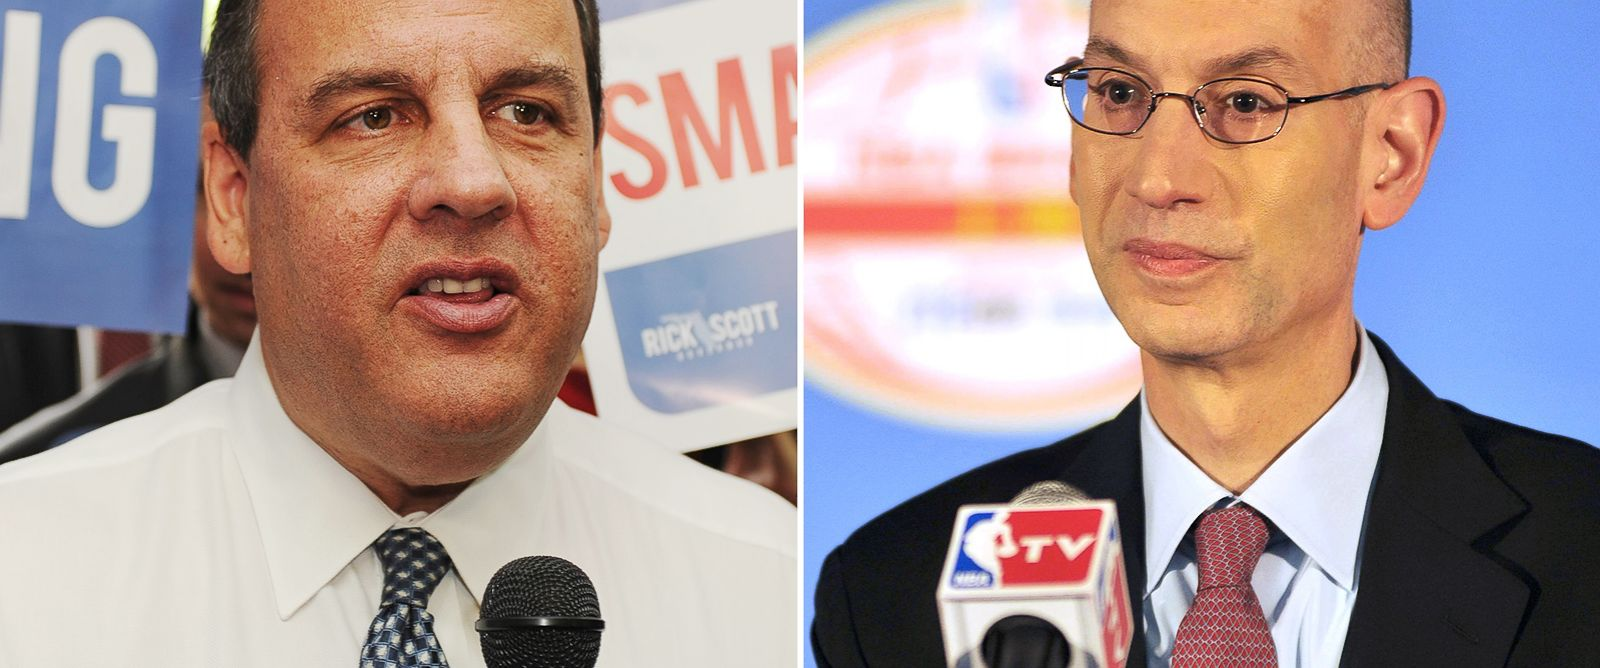 PHOTO: New Jersey Governor Chris Christie, seen left in this Oct. 8, 2014 file photo and NBA Commissioner Adam Silver, seen right in this Oct. 12, 2014 file photo.